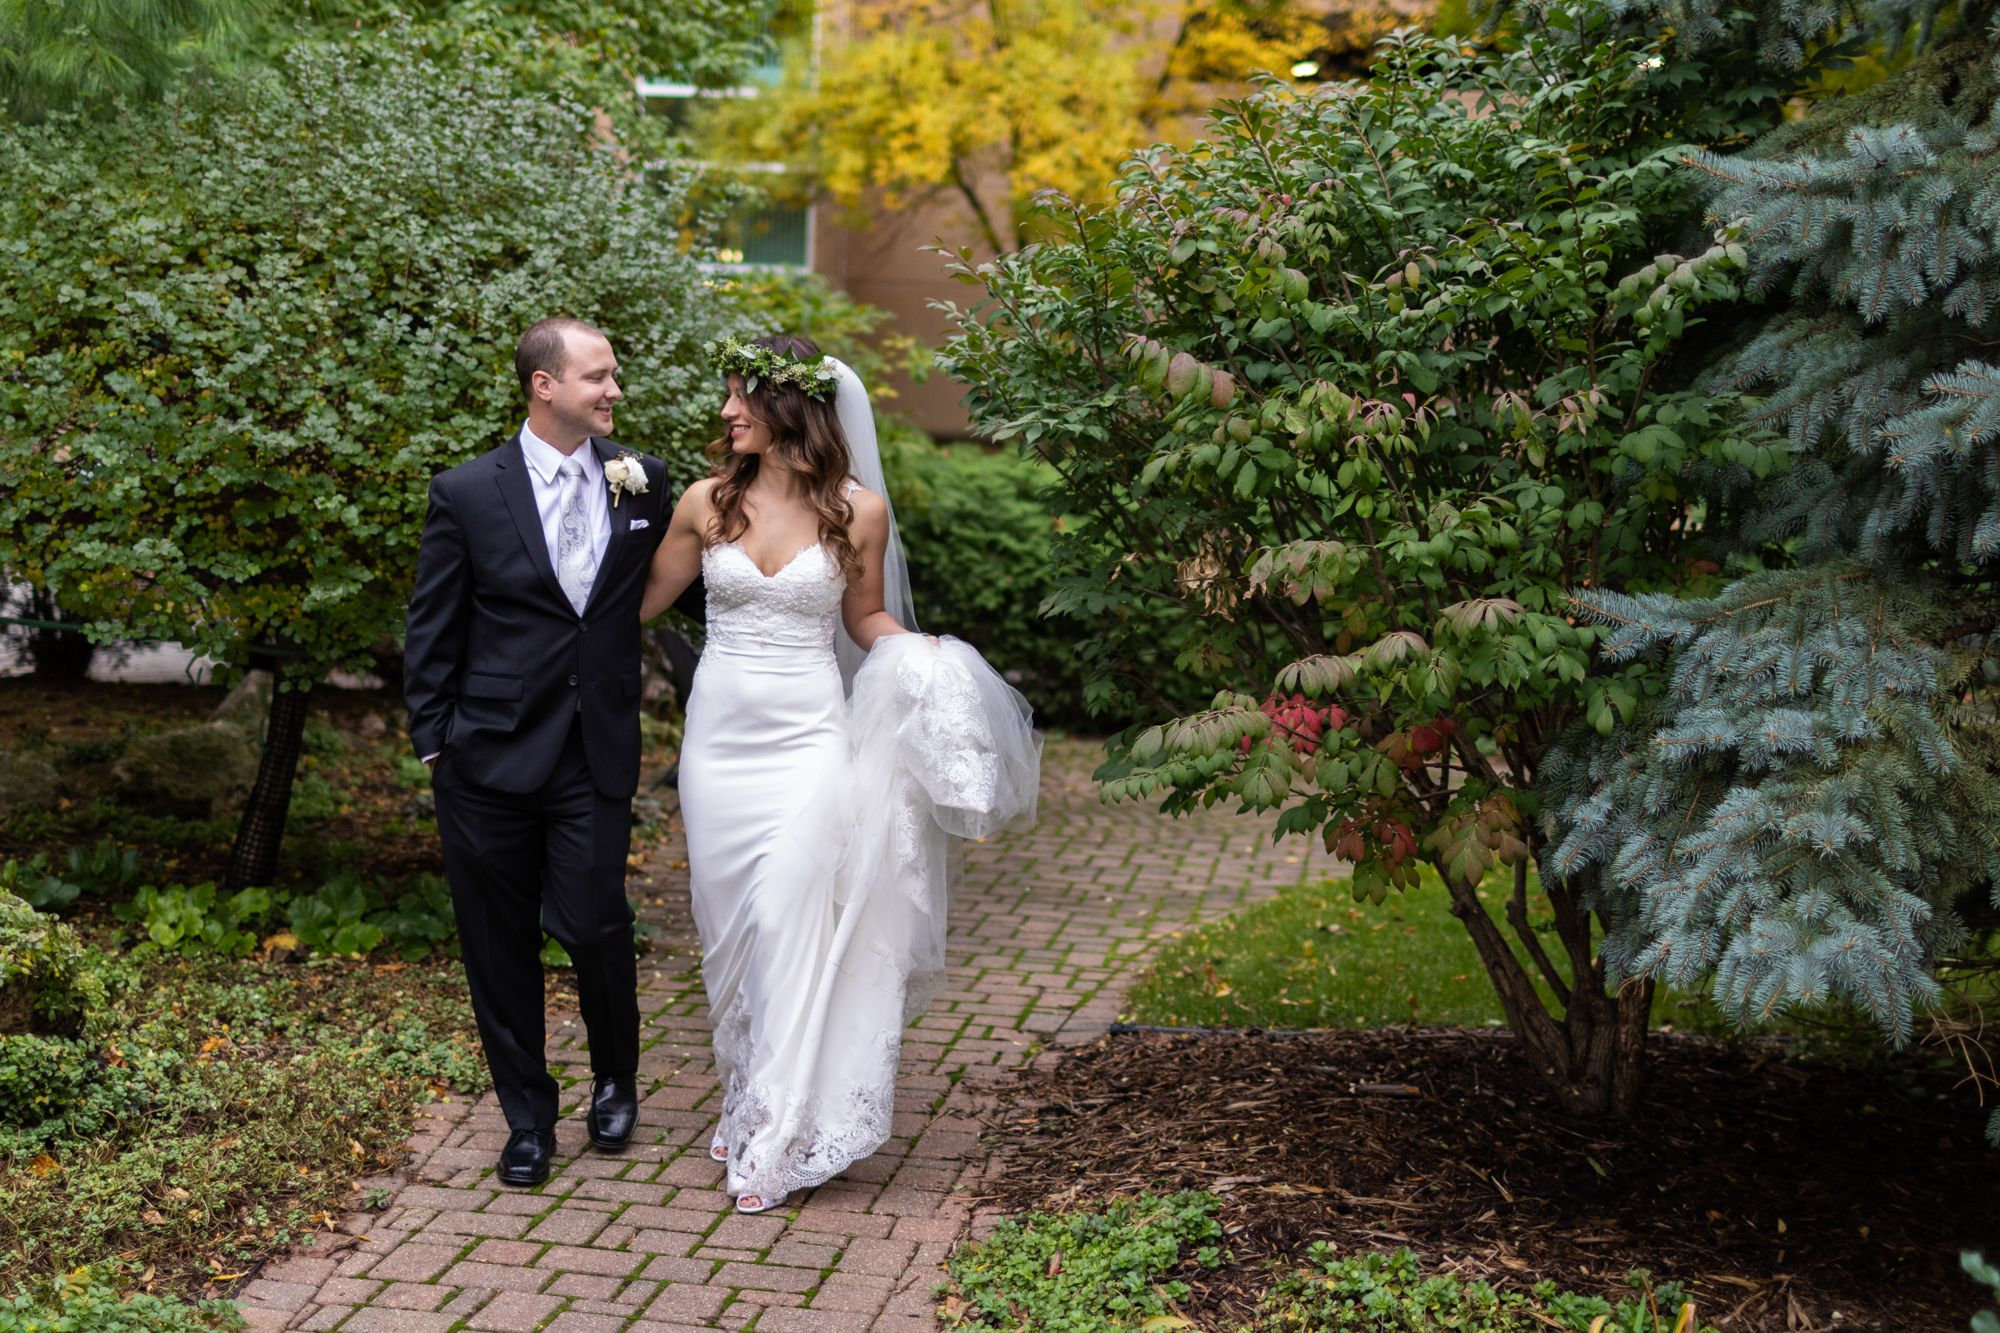 Just The Couple Wedding Photography Bridal Flower Crown Professional Wedding Photographer Wedding Photographers Wedding Photography